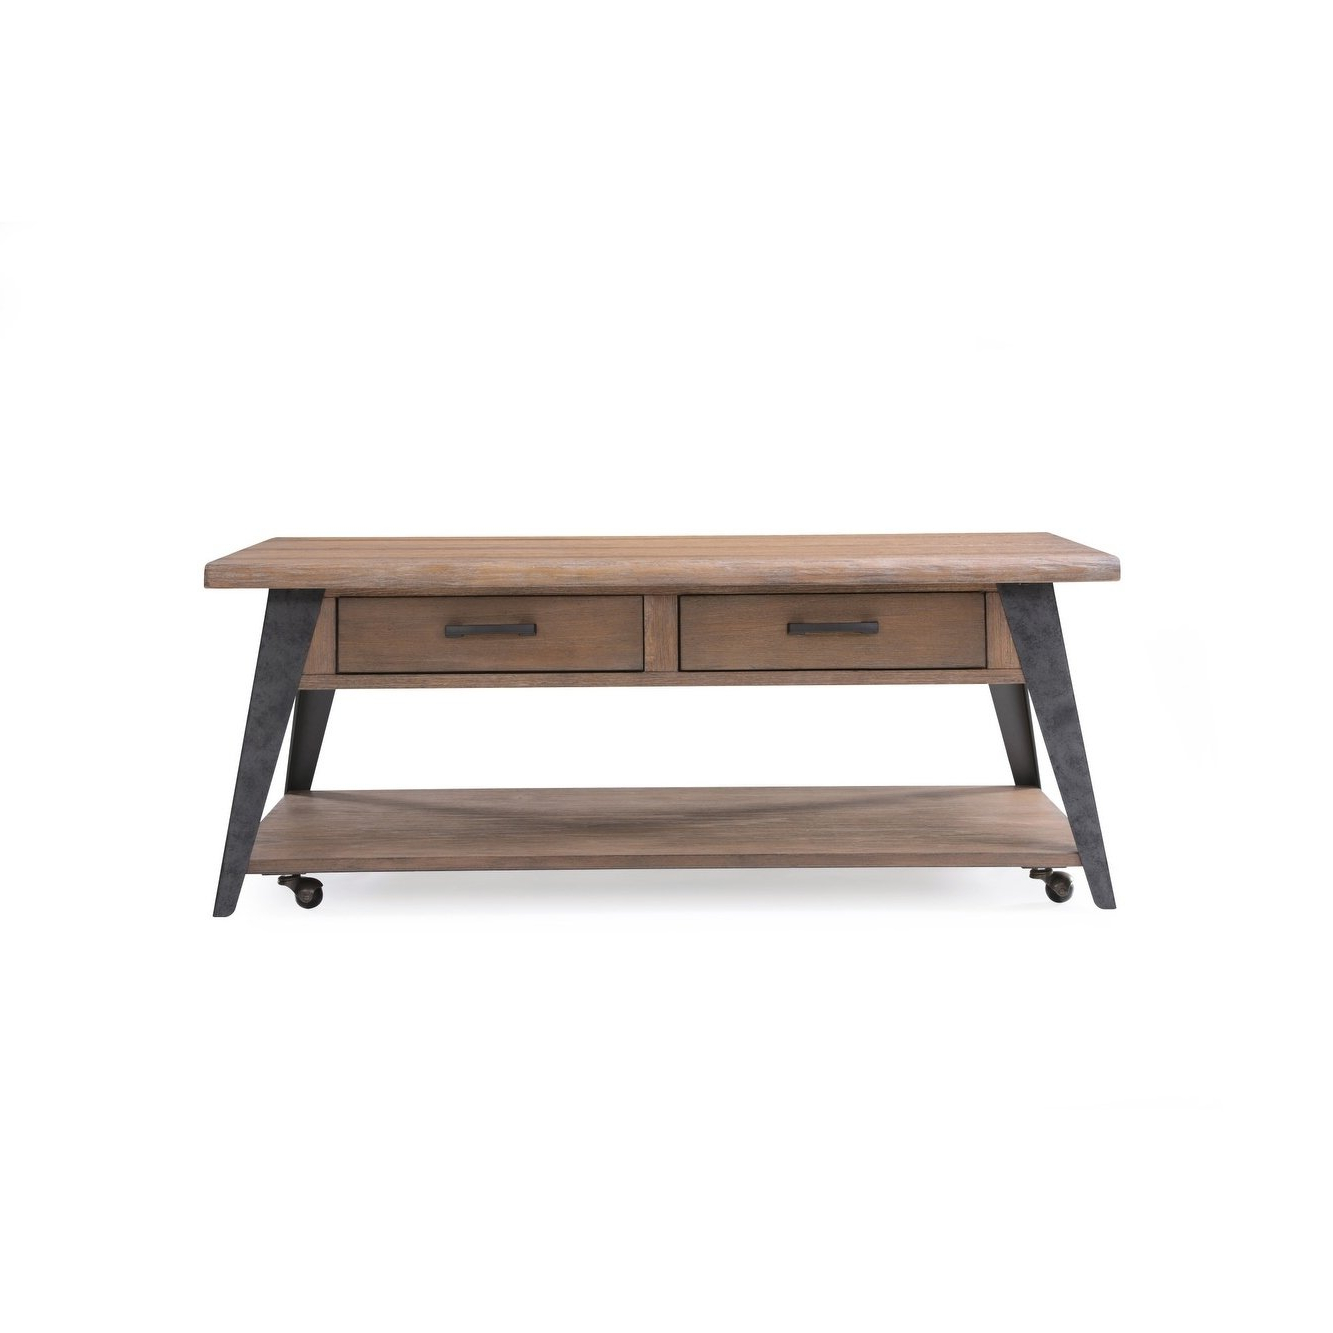 Mill Coffee Tables Pertaining To Latest Shop Emerald Home Harper's Mill Weathered Tan Coffee Table – On Sale (View 14 of 20)